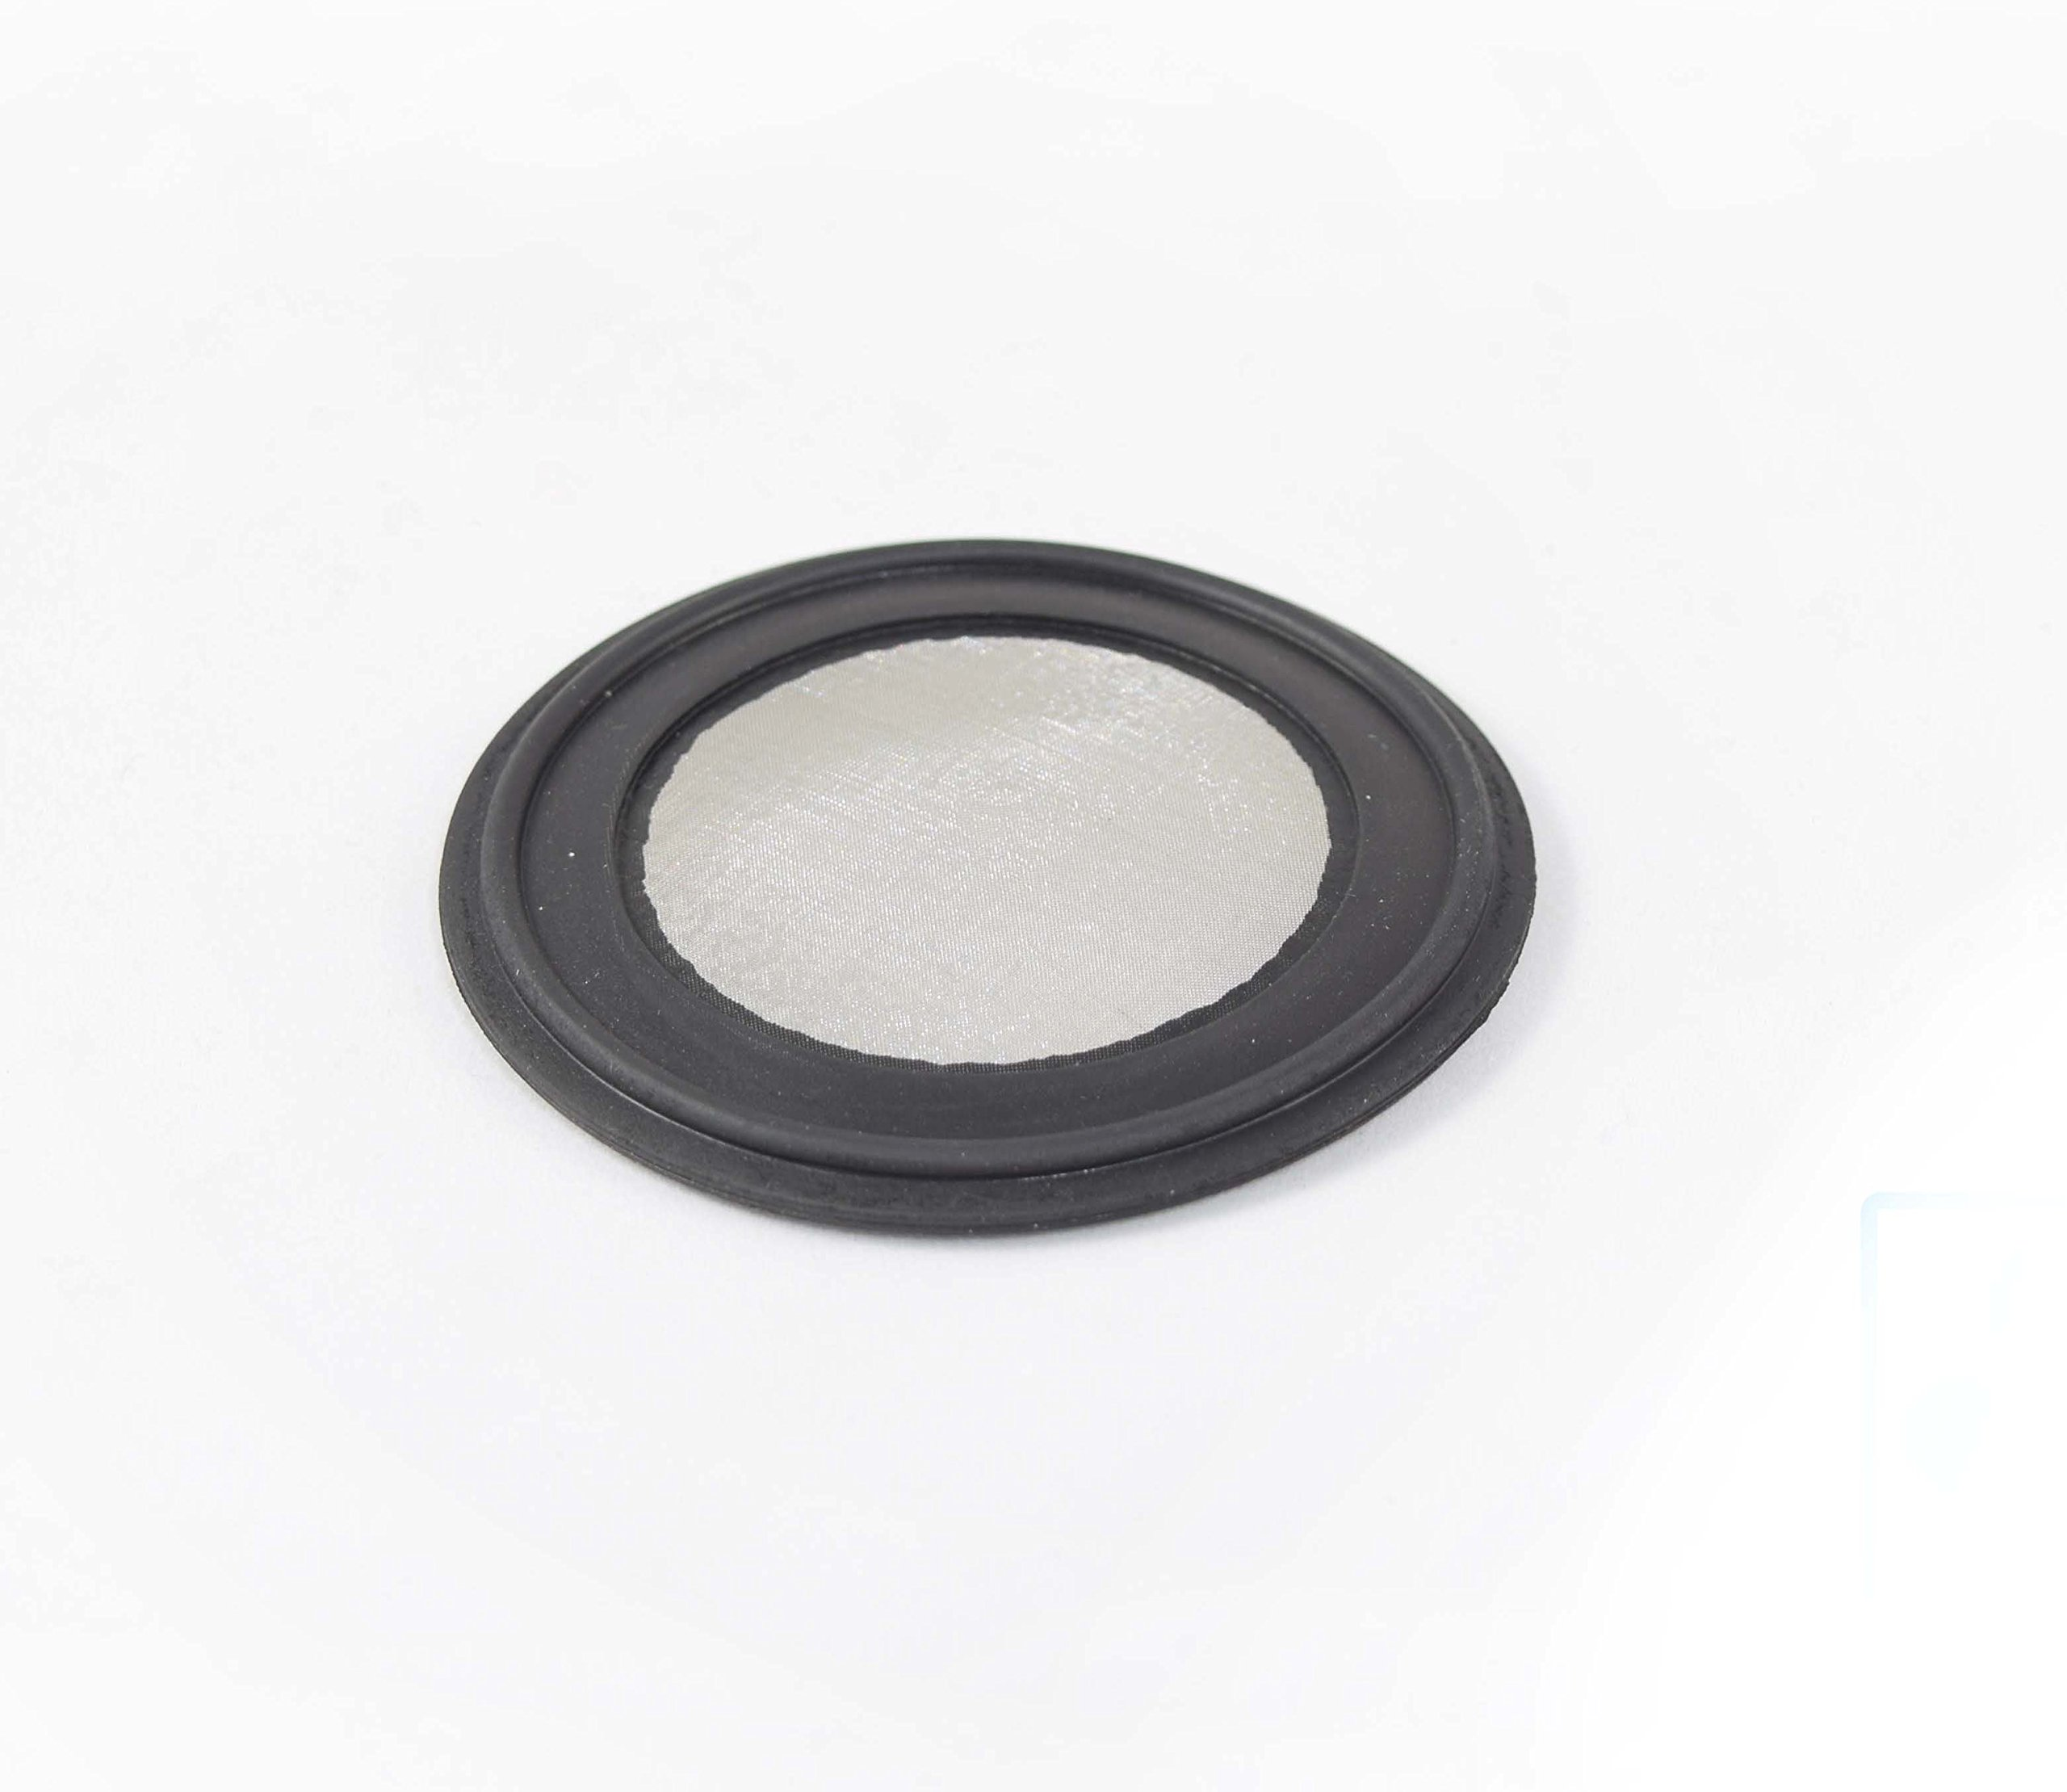 ARTESIAN SYSTEMS 20 Micron VITON/FKM Tri Clamp Screen Filter Gasket 316L (20Uf Micron/625Mesh) Stainless Steel Pharmaceutical Grade Filter Mesh. VITON With & FDA Certification (3'') by ARTESIAN SYSTEMS